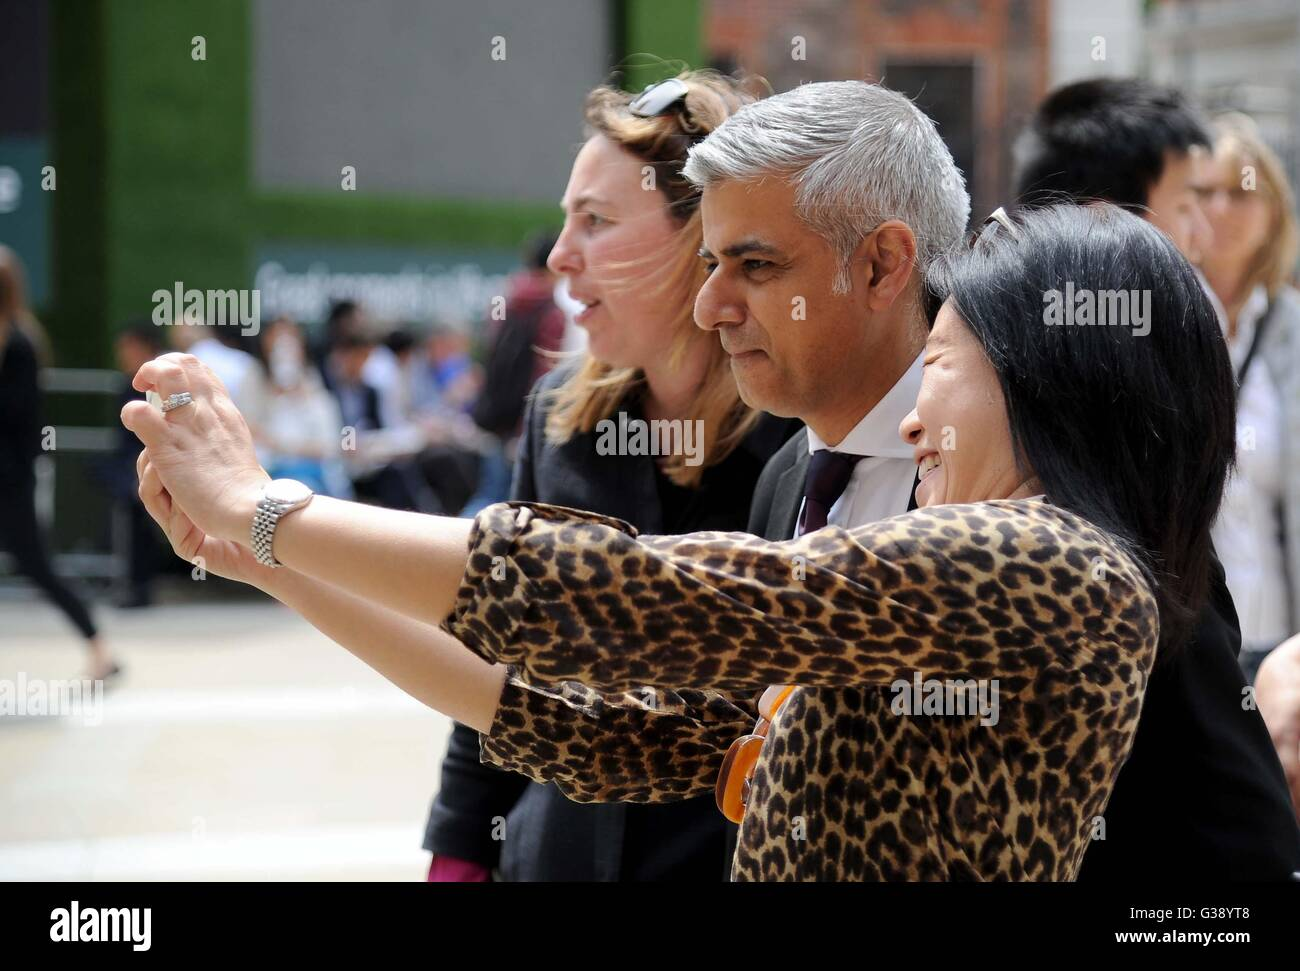 Sadiq Khan and Saadiya, 'London Mayor' in London, Britain, UK - Stock Image